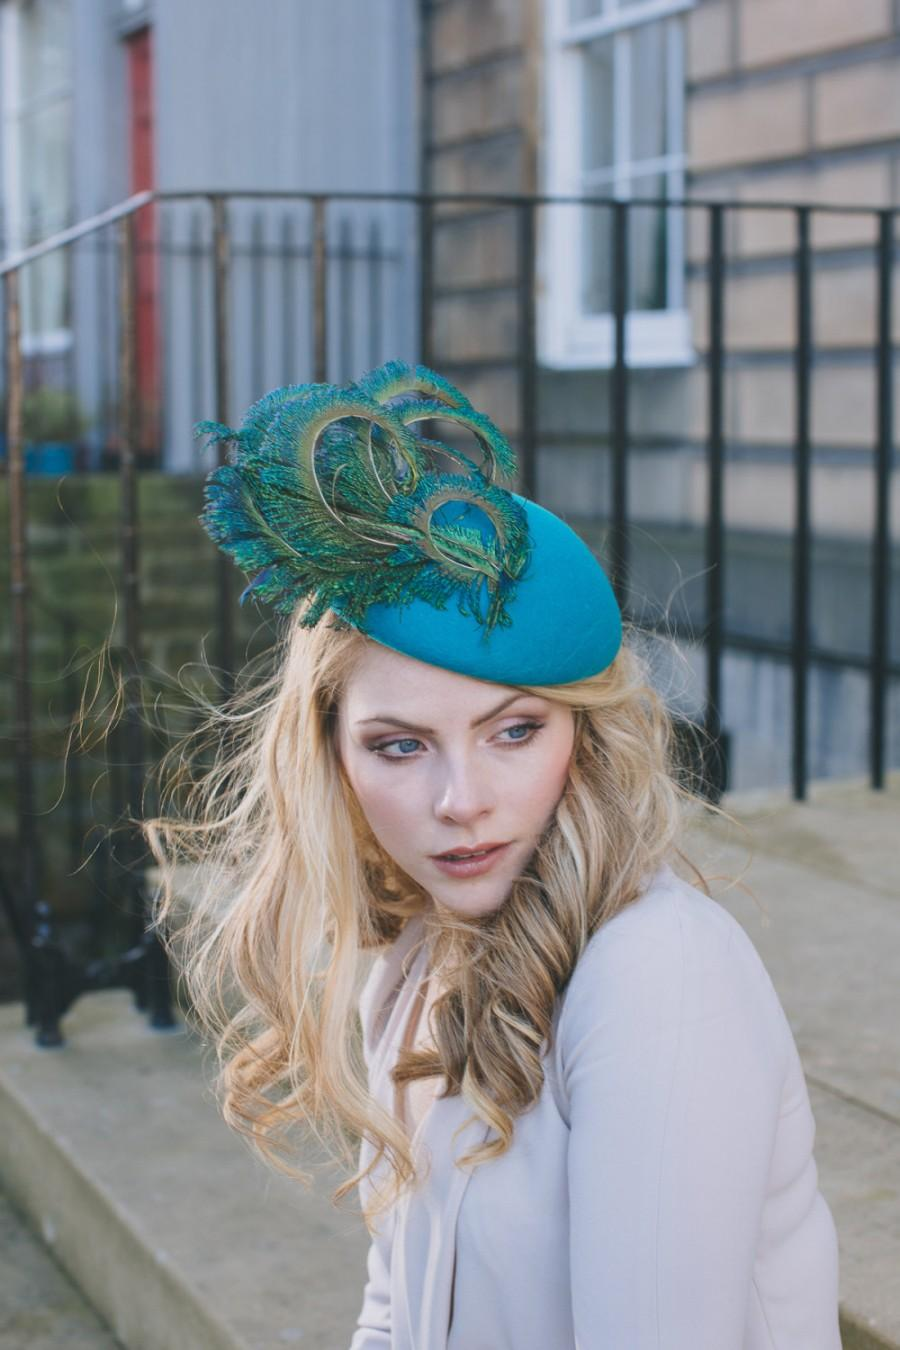 Hochzeit - Turquoise/jade/blue felt and peacock feather percher hat for wedding guest or Ascot races.